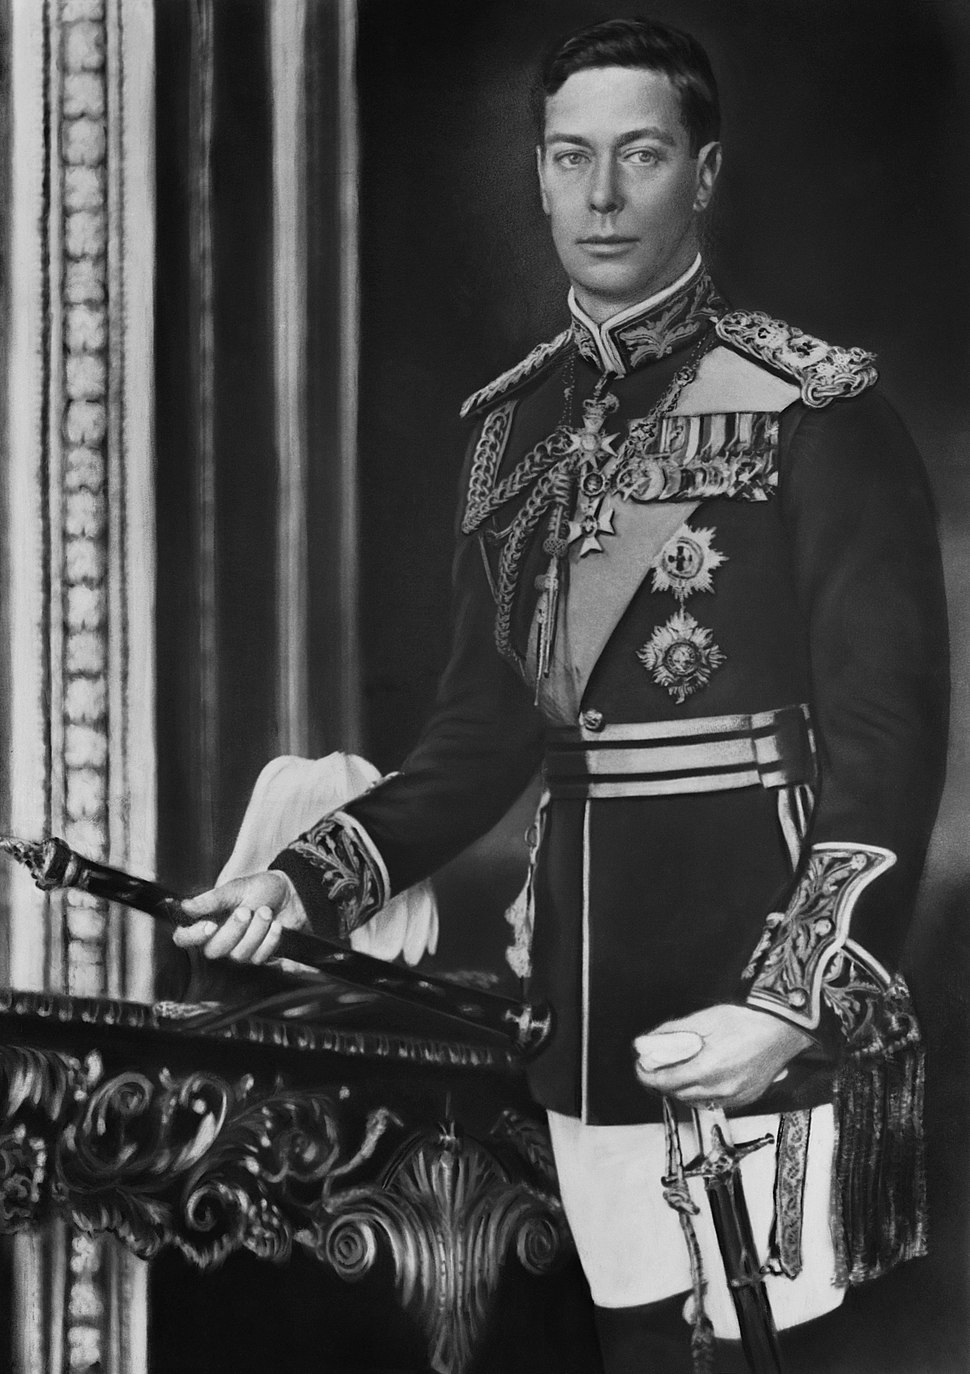 King George VI of England, formal photo portrait, circa 1940-1946 - edit